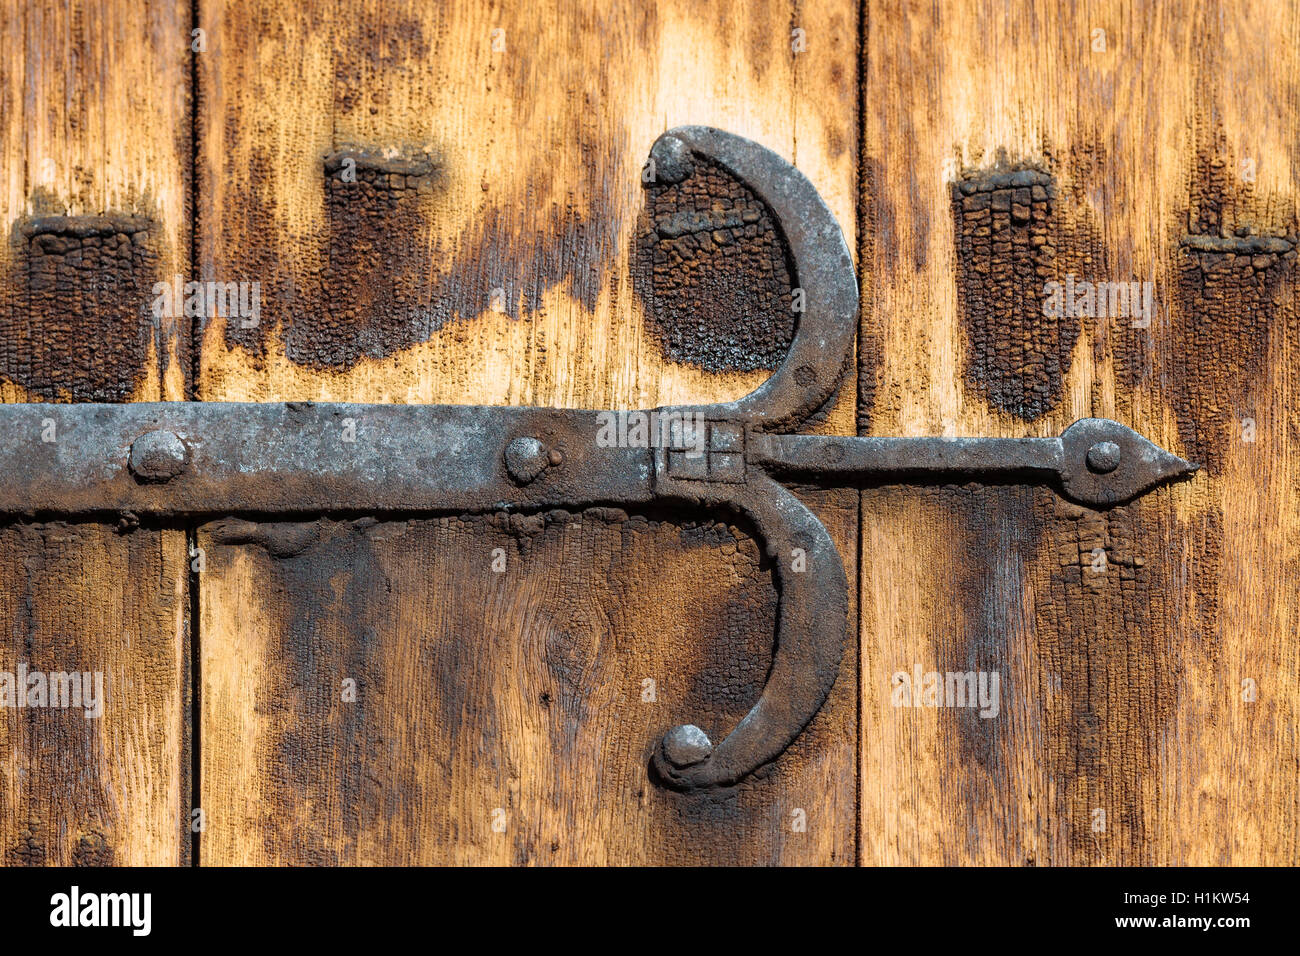 Iron door fitting, Stave Church Lom, Lom, Oppland, Norway - Stock Image